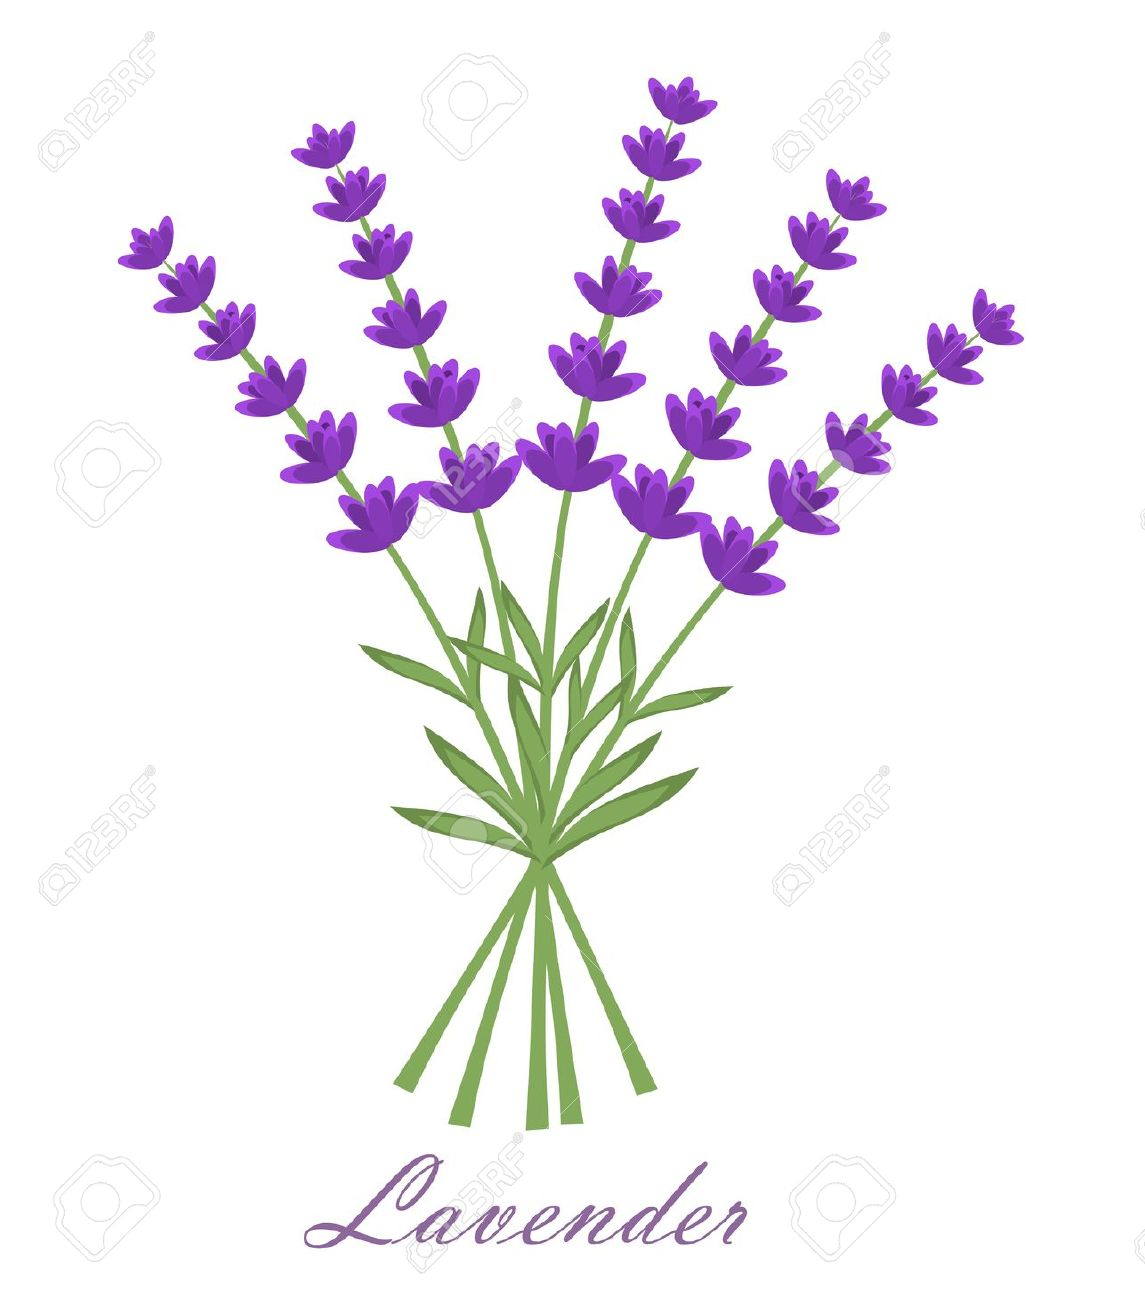 Lavender clipart #9, Download drawings